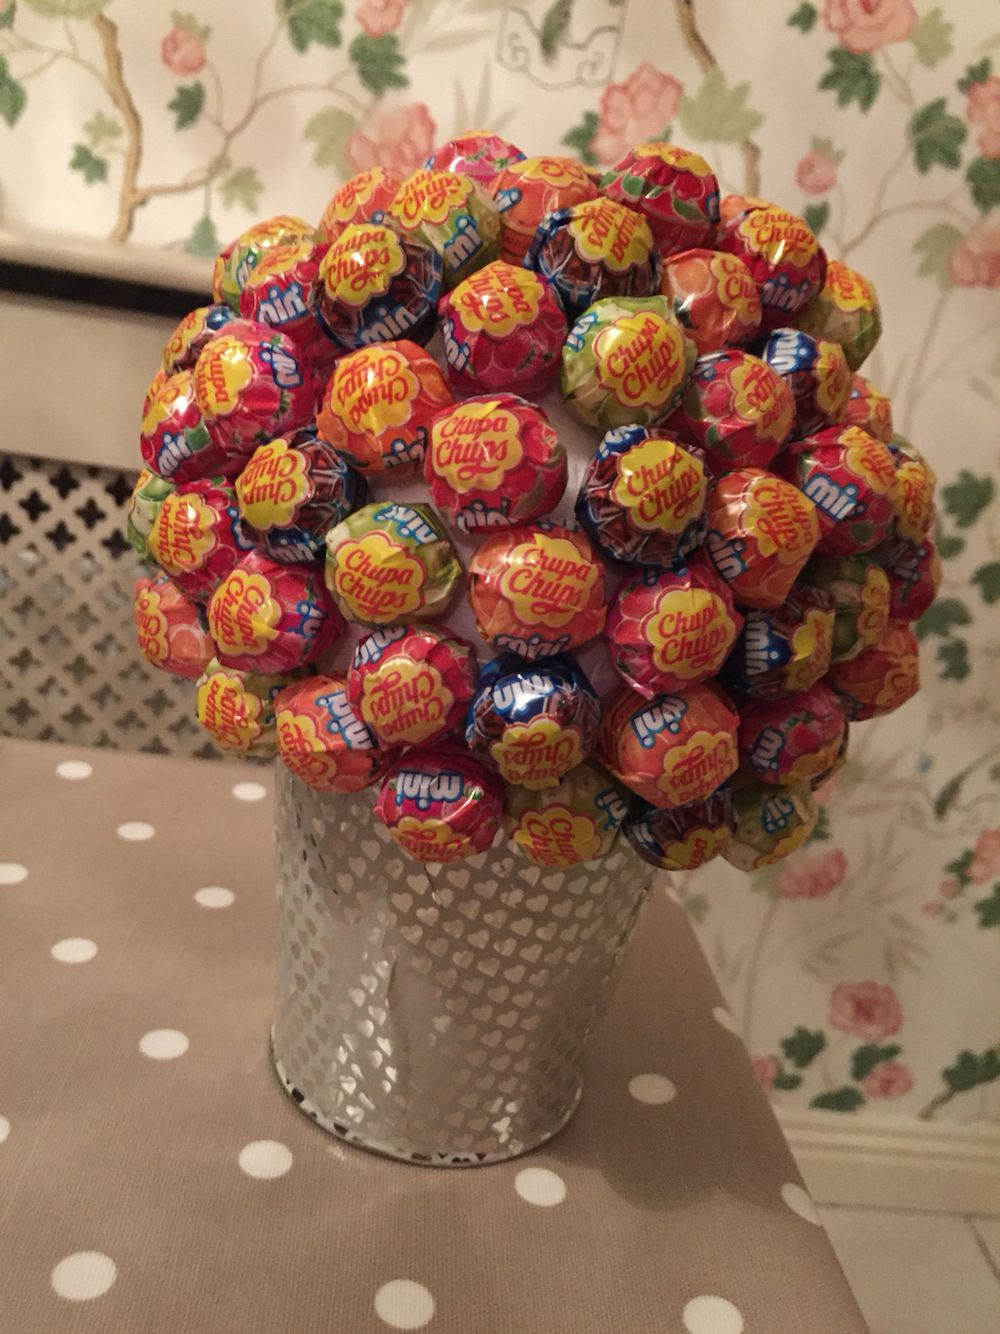 Lolly pop bouquet - gift ideas for bday, anniversary, Valentine\'s ...